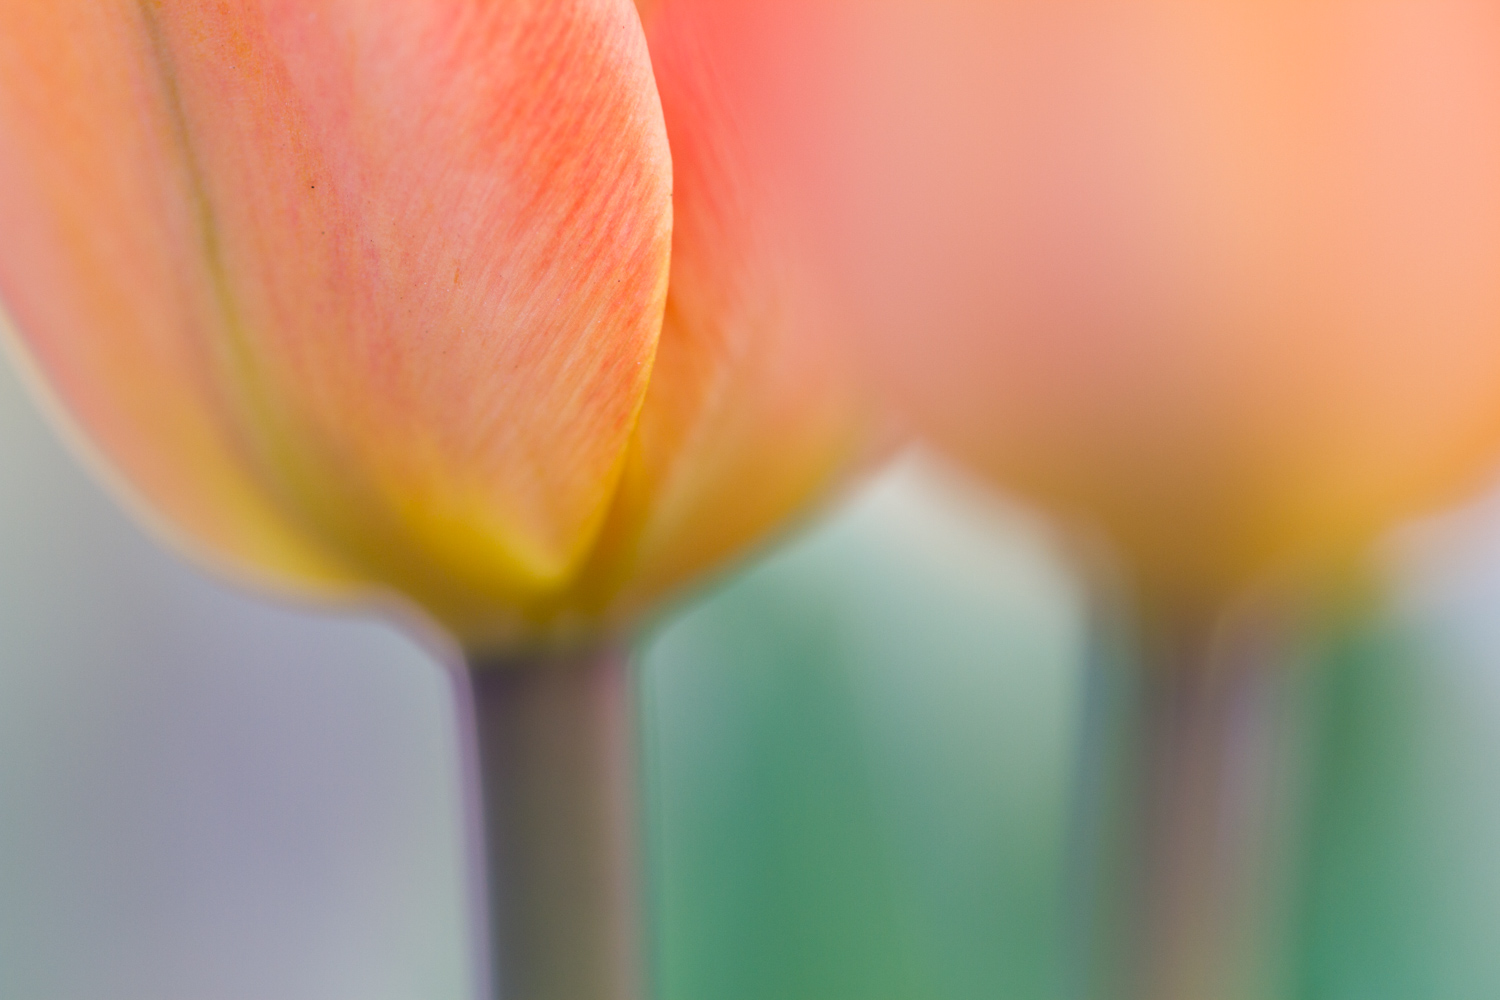 Extreme close up macro shot of a flower with a focus on the petal